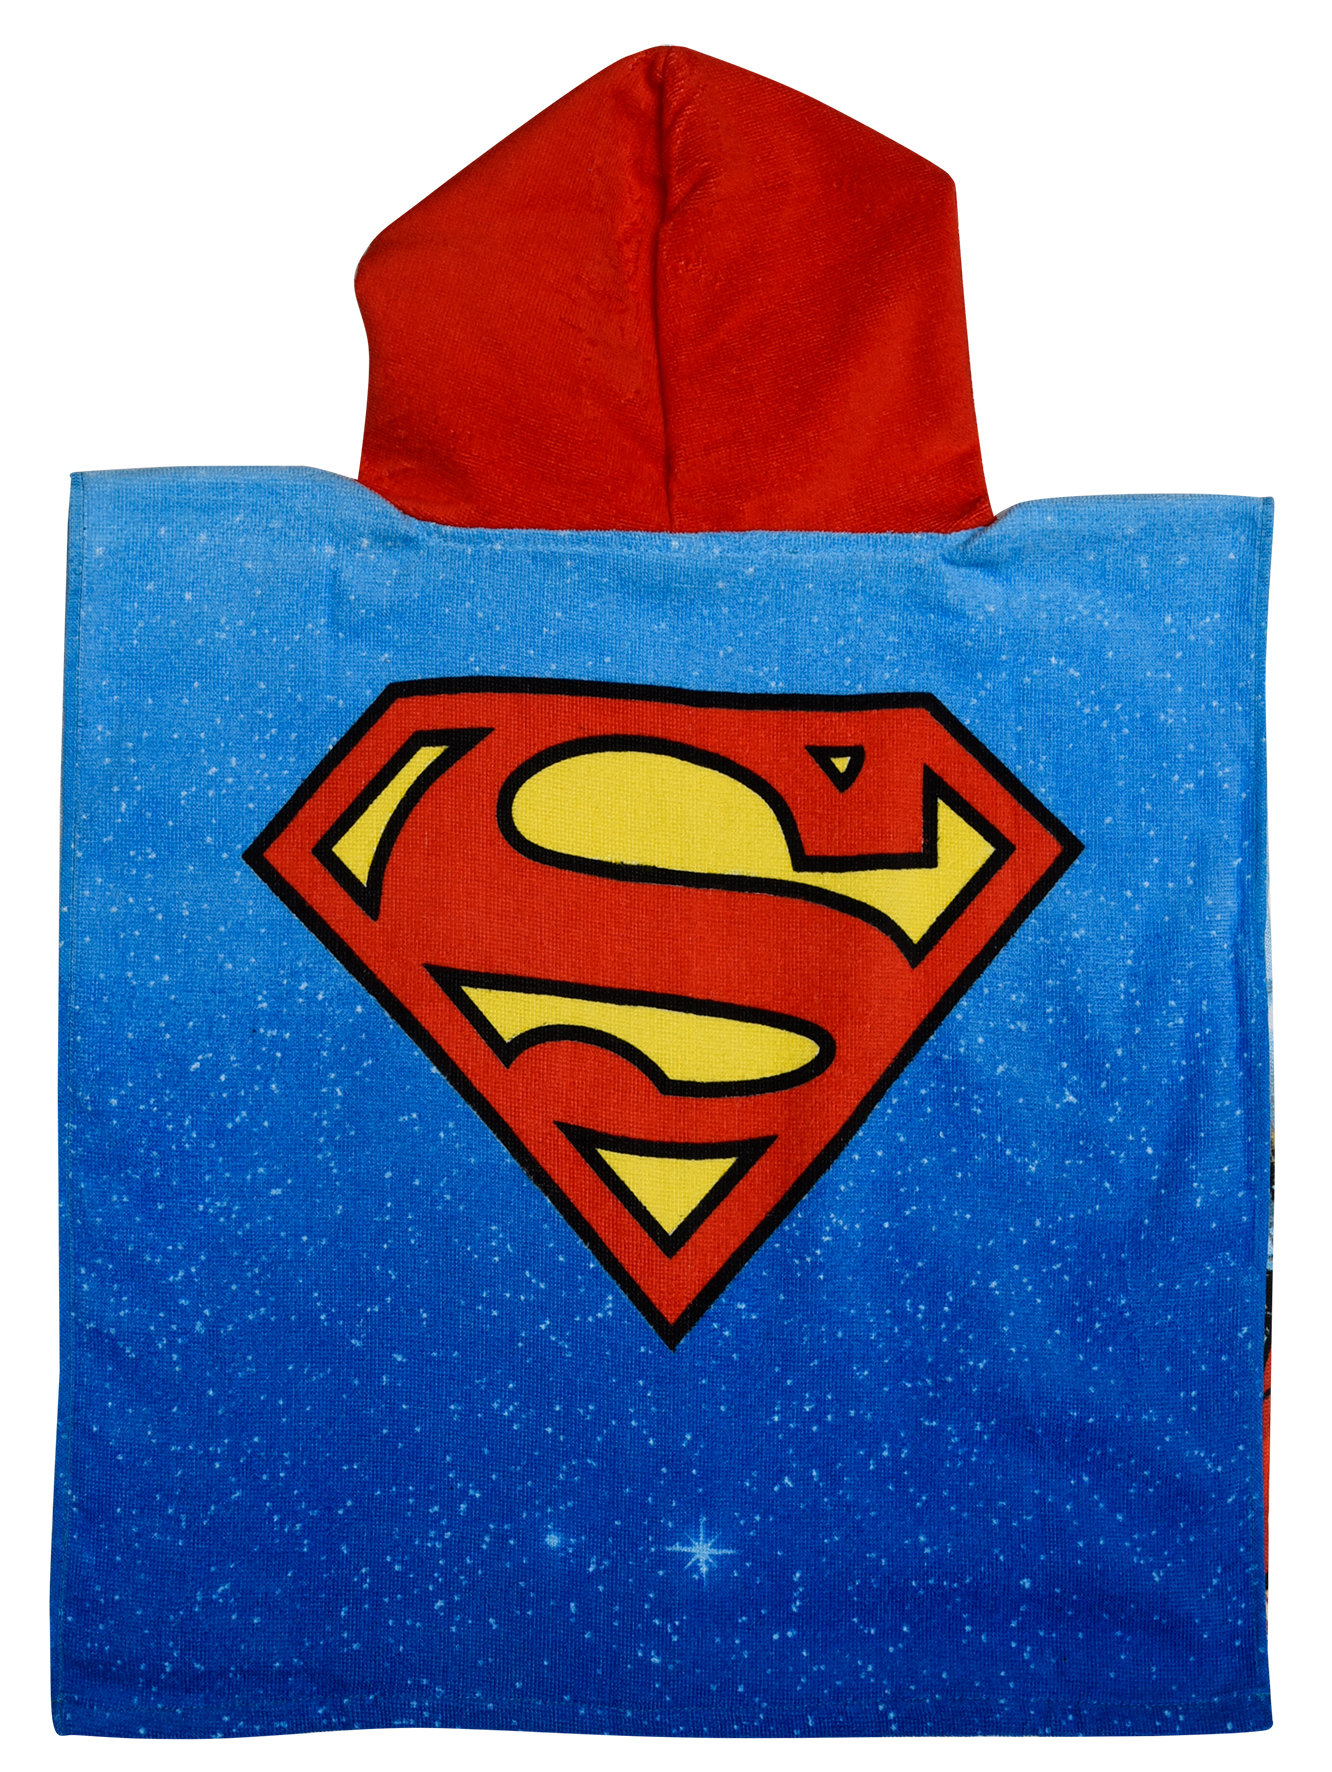 """New Superman /""""Justice League/"""" Poncho Boys Kids Sun Protect Holiday Beach Towel"""